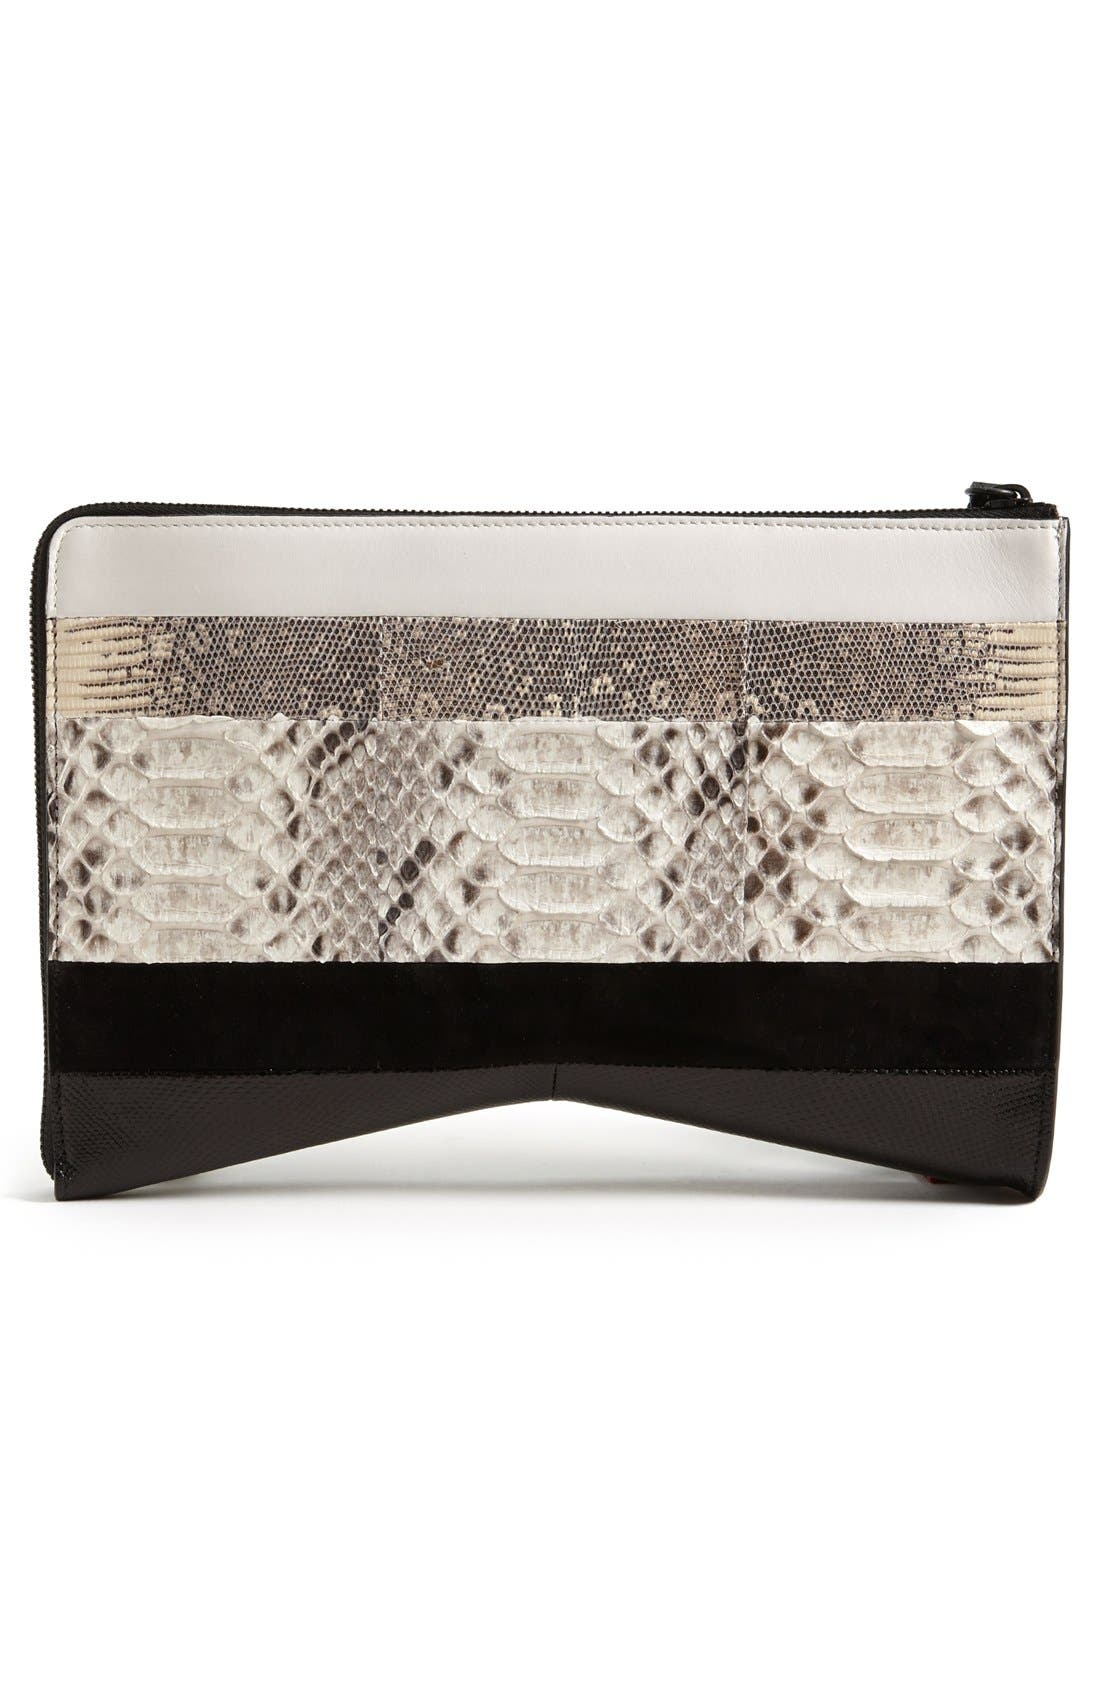 Alternate Image 1 Selected - Narciso Rodriguez 'Boomerang' Genuine Python, Lizard & Leather Clutch